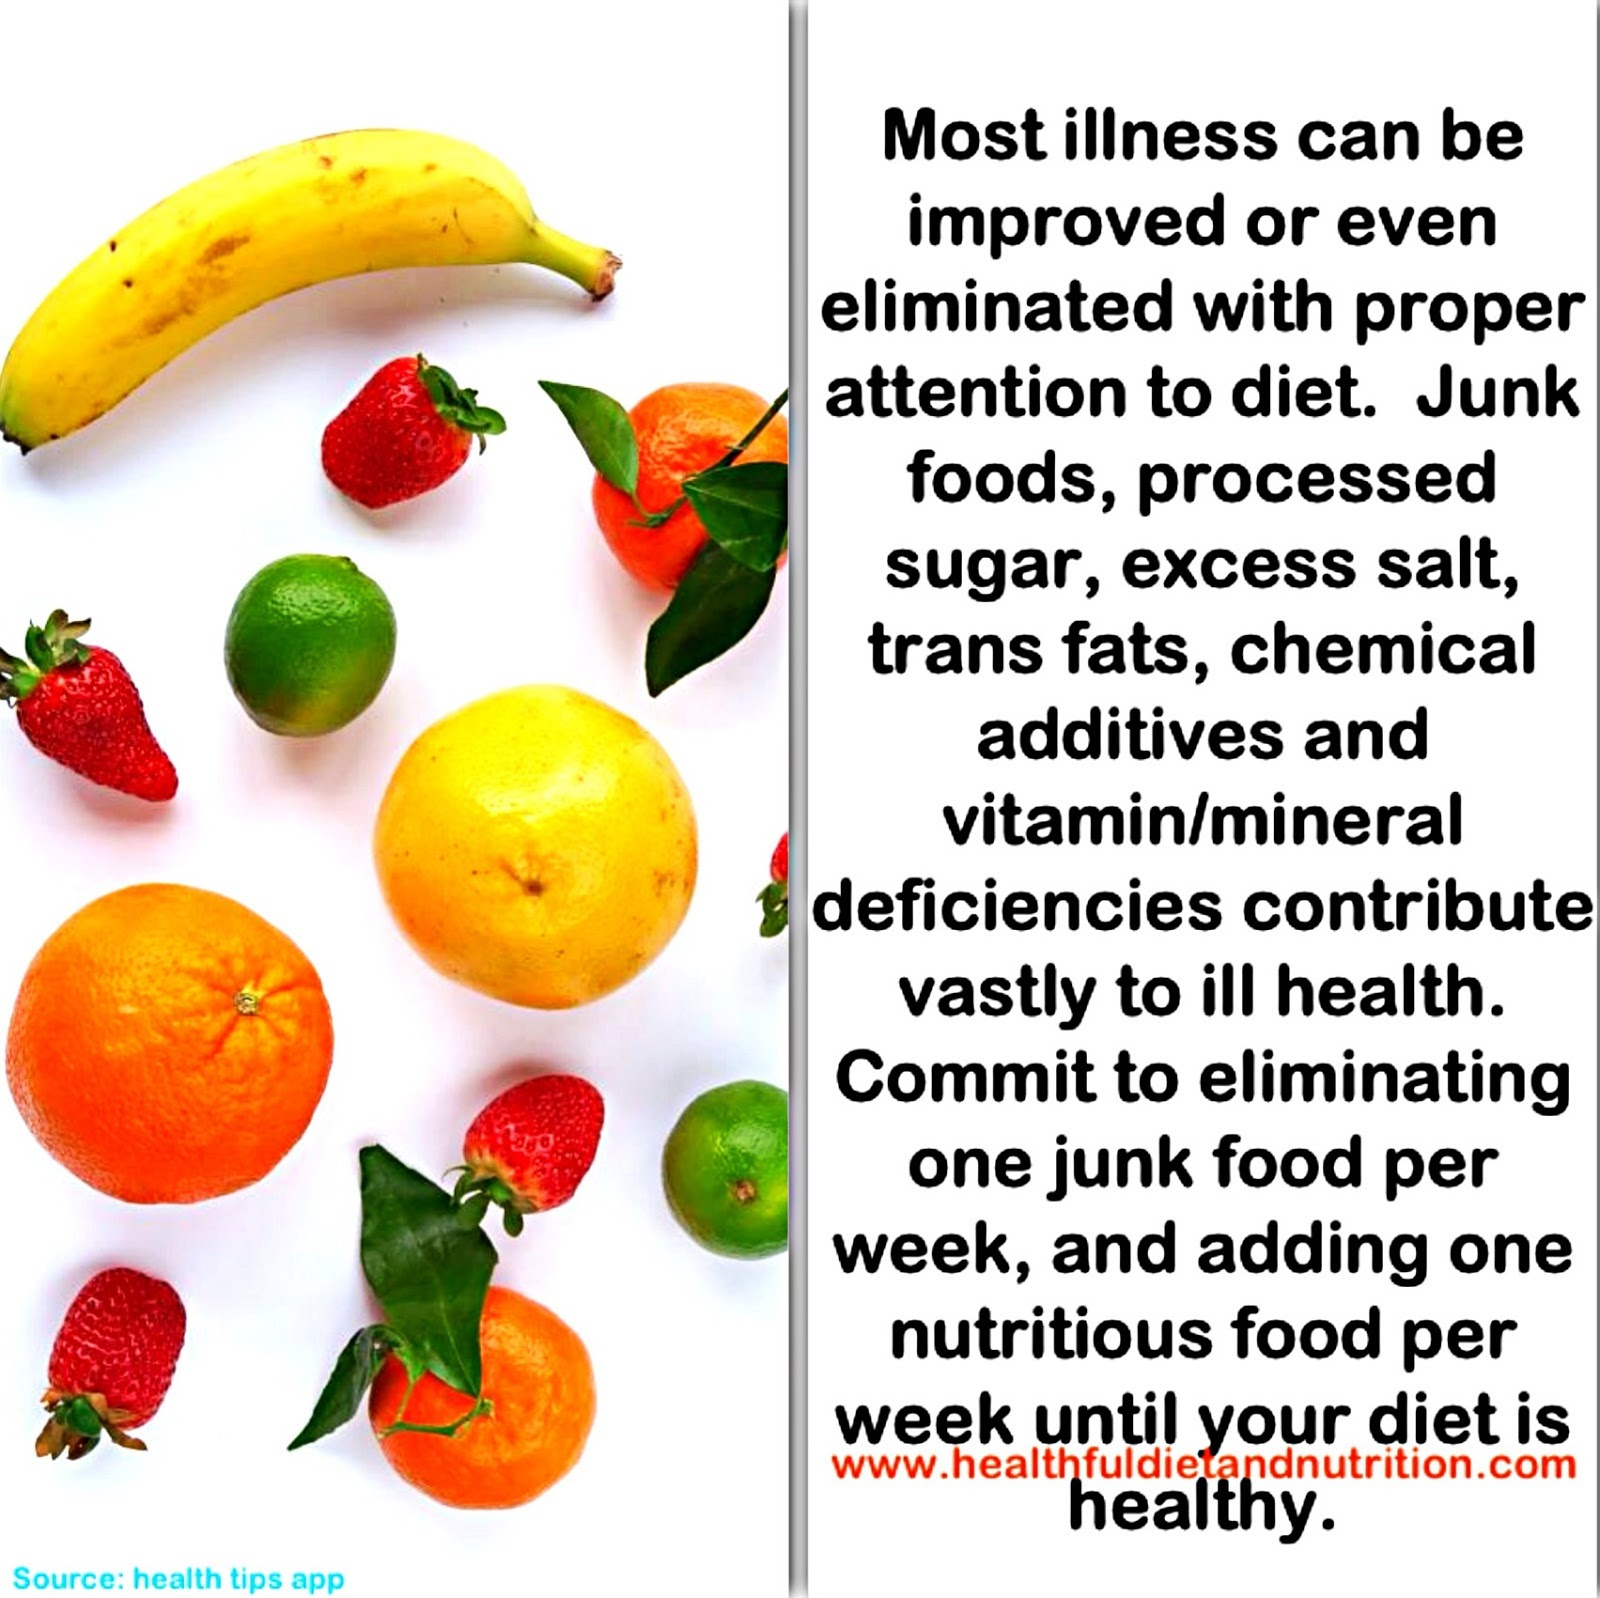 Eliminate One Junk Food Per Week and add one nutritious food per week